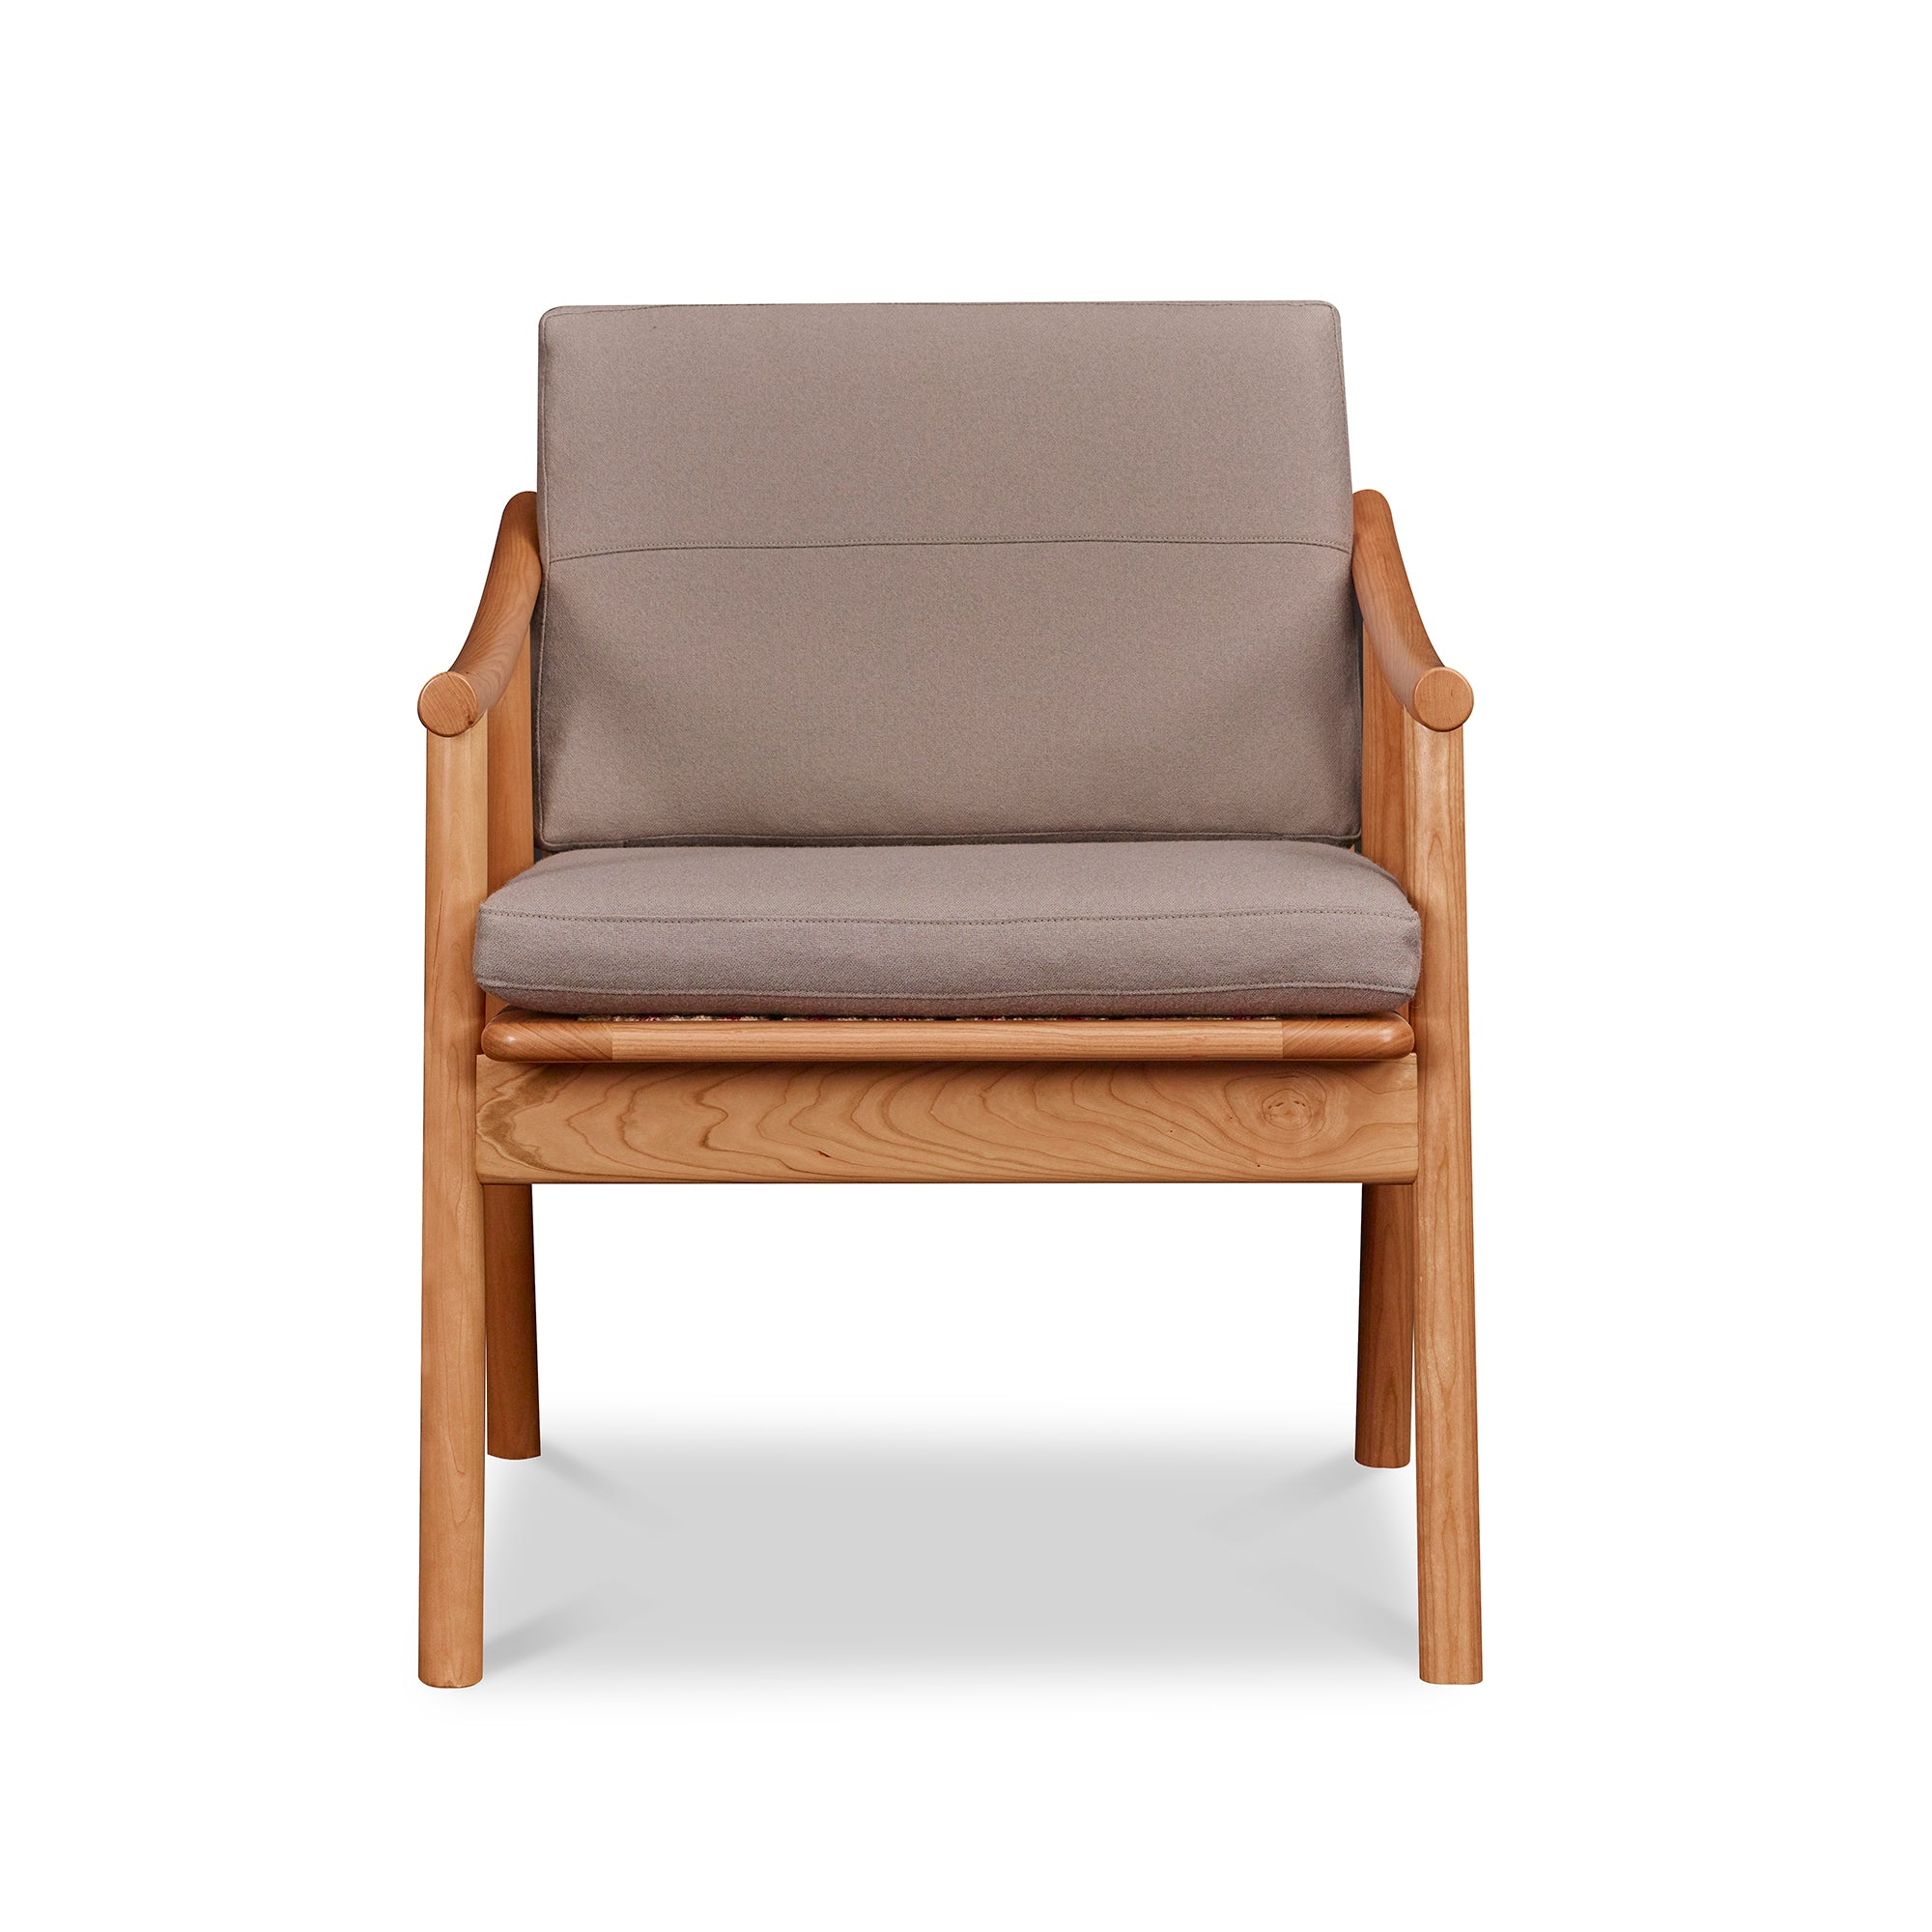 Front view of solid cherry Scandinavian style lounge chair with Knoll fabric cushions in Putty, from Maine's Chilton Furniture Co.